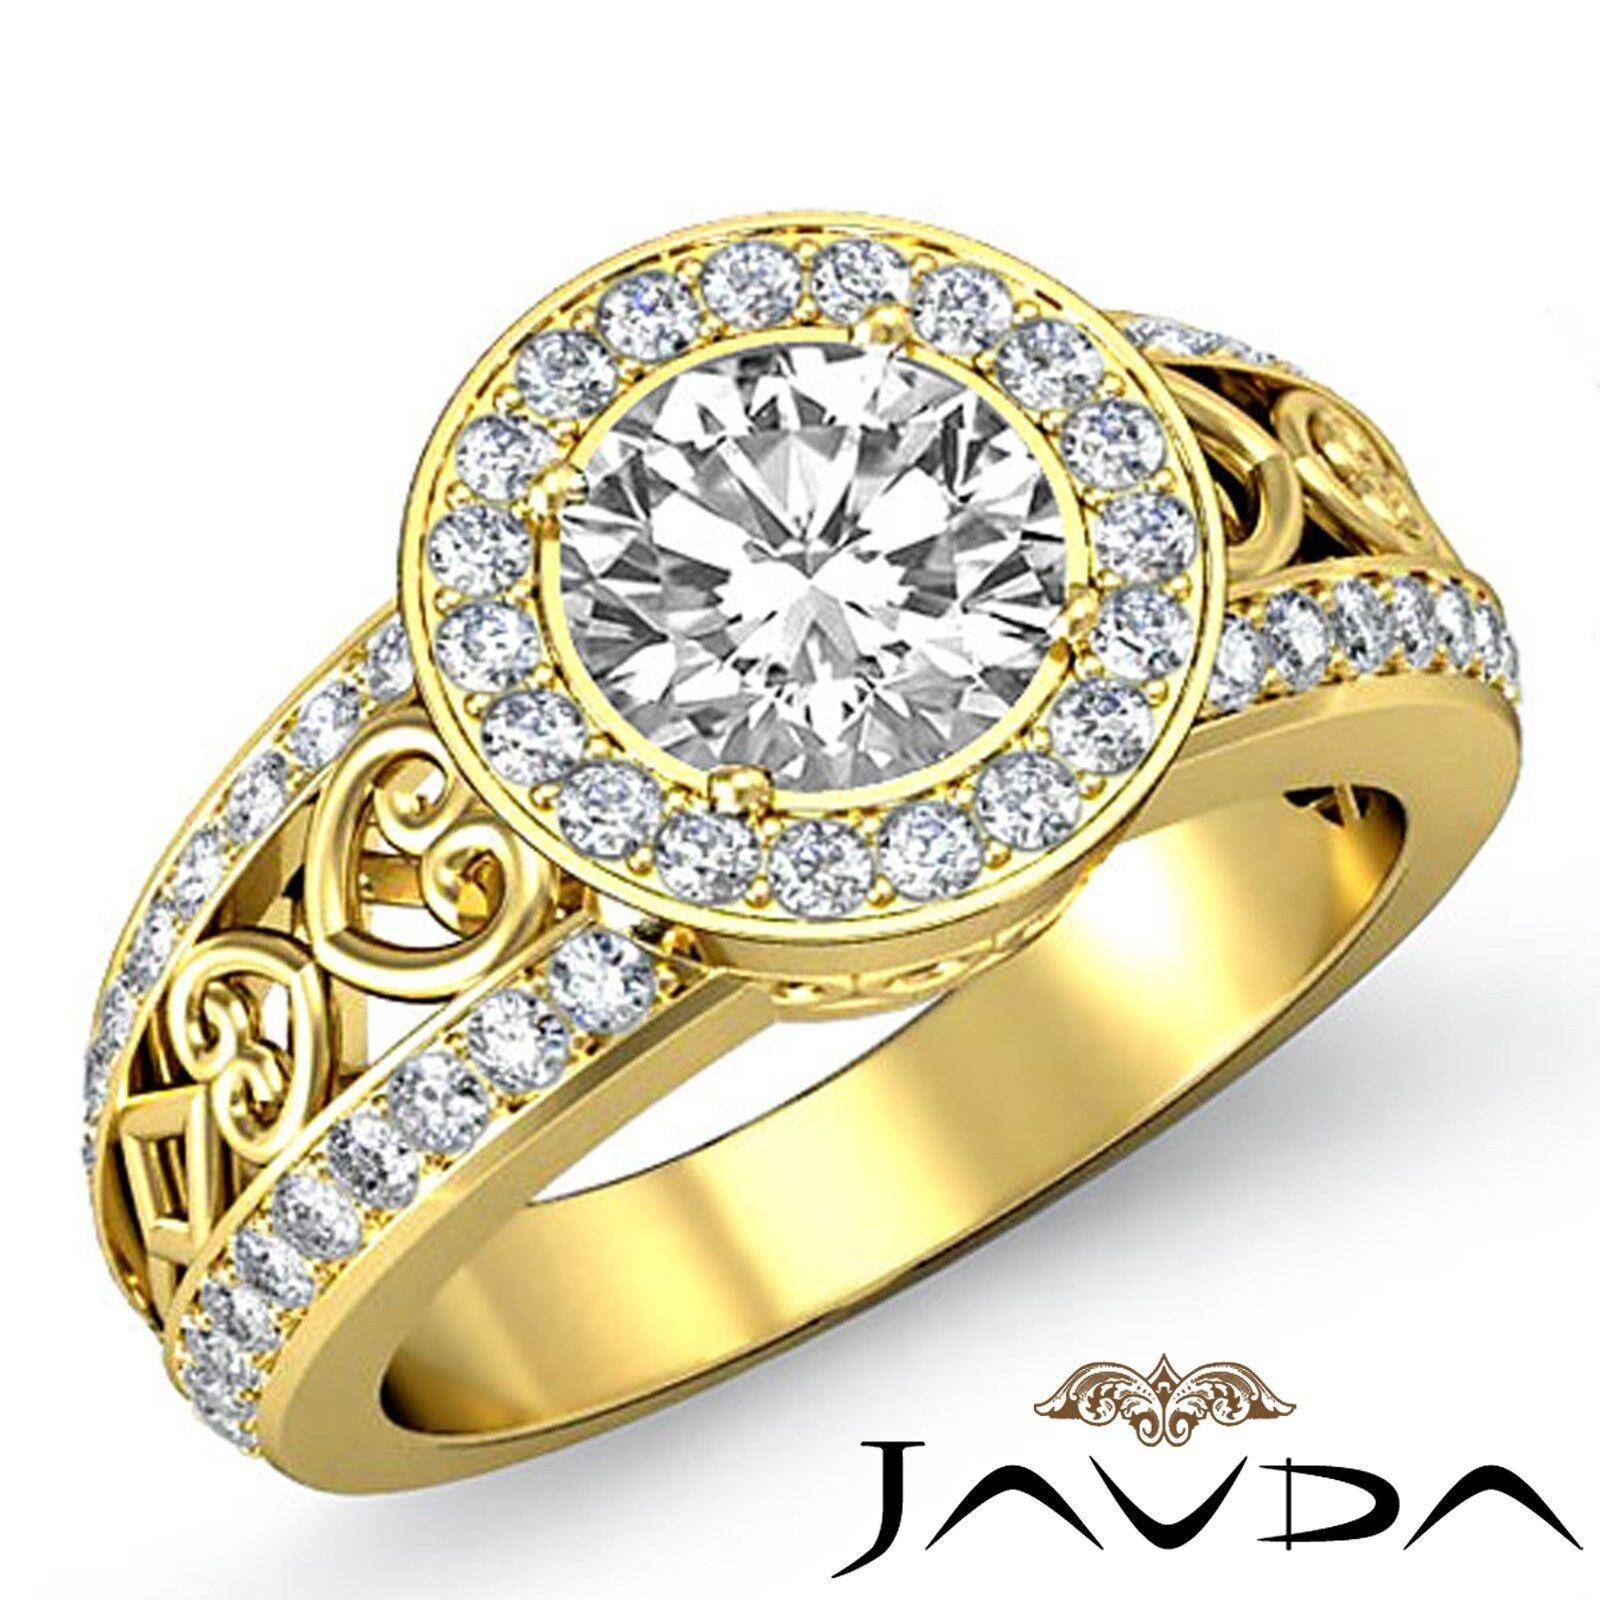 Filigree Shank Halo Pave Setting Round Diamond Engagement Ring GIA F VS1 2.25 Ct